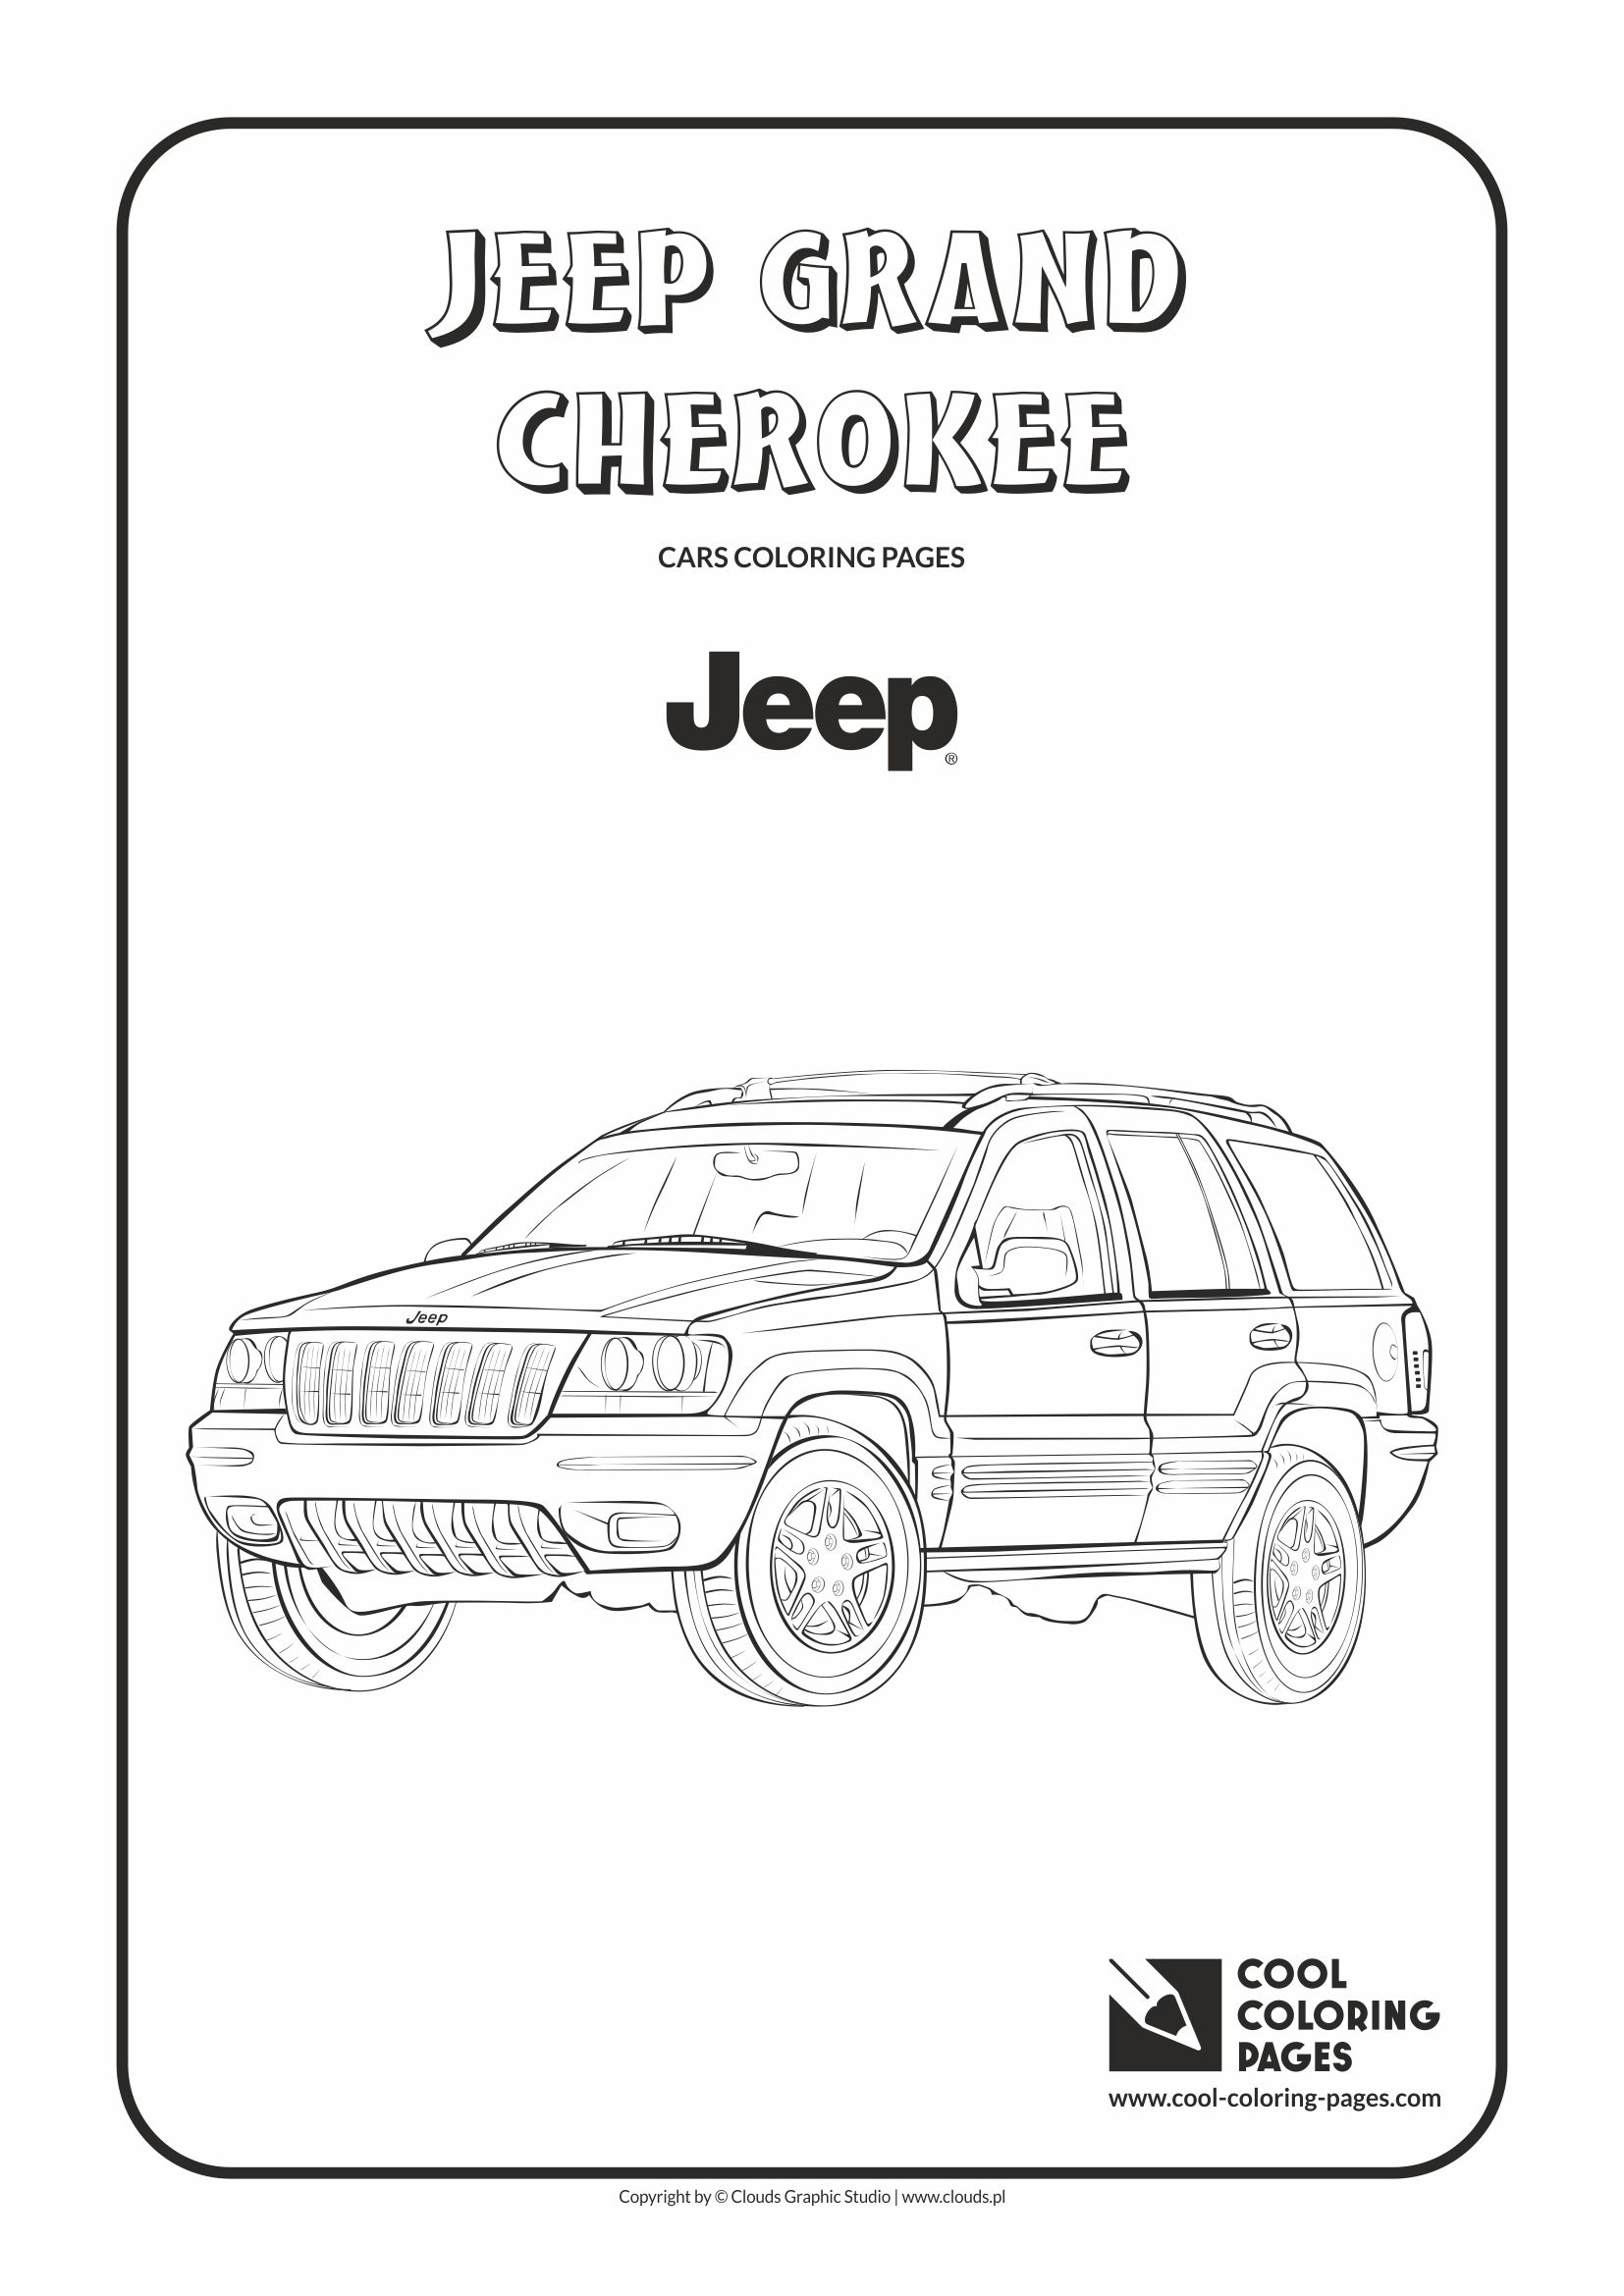 Cool Coloring Pages - Vehicles / Jeep Grand Cherokee / Coloring page with Jeep Grand Cherokee